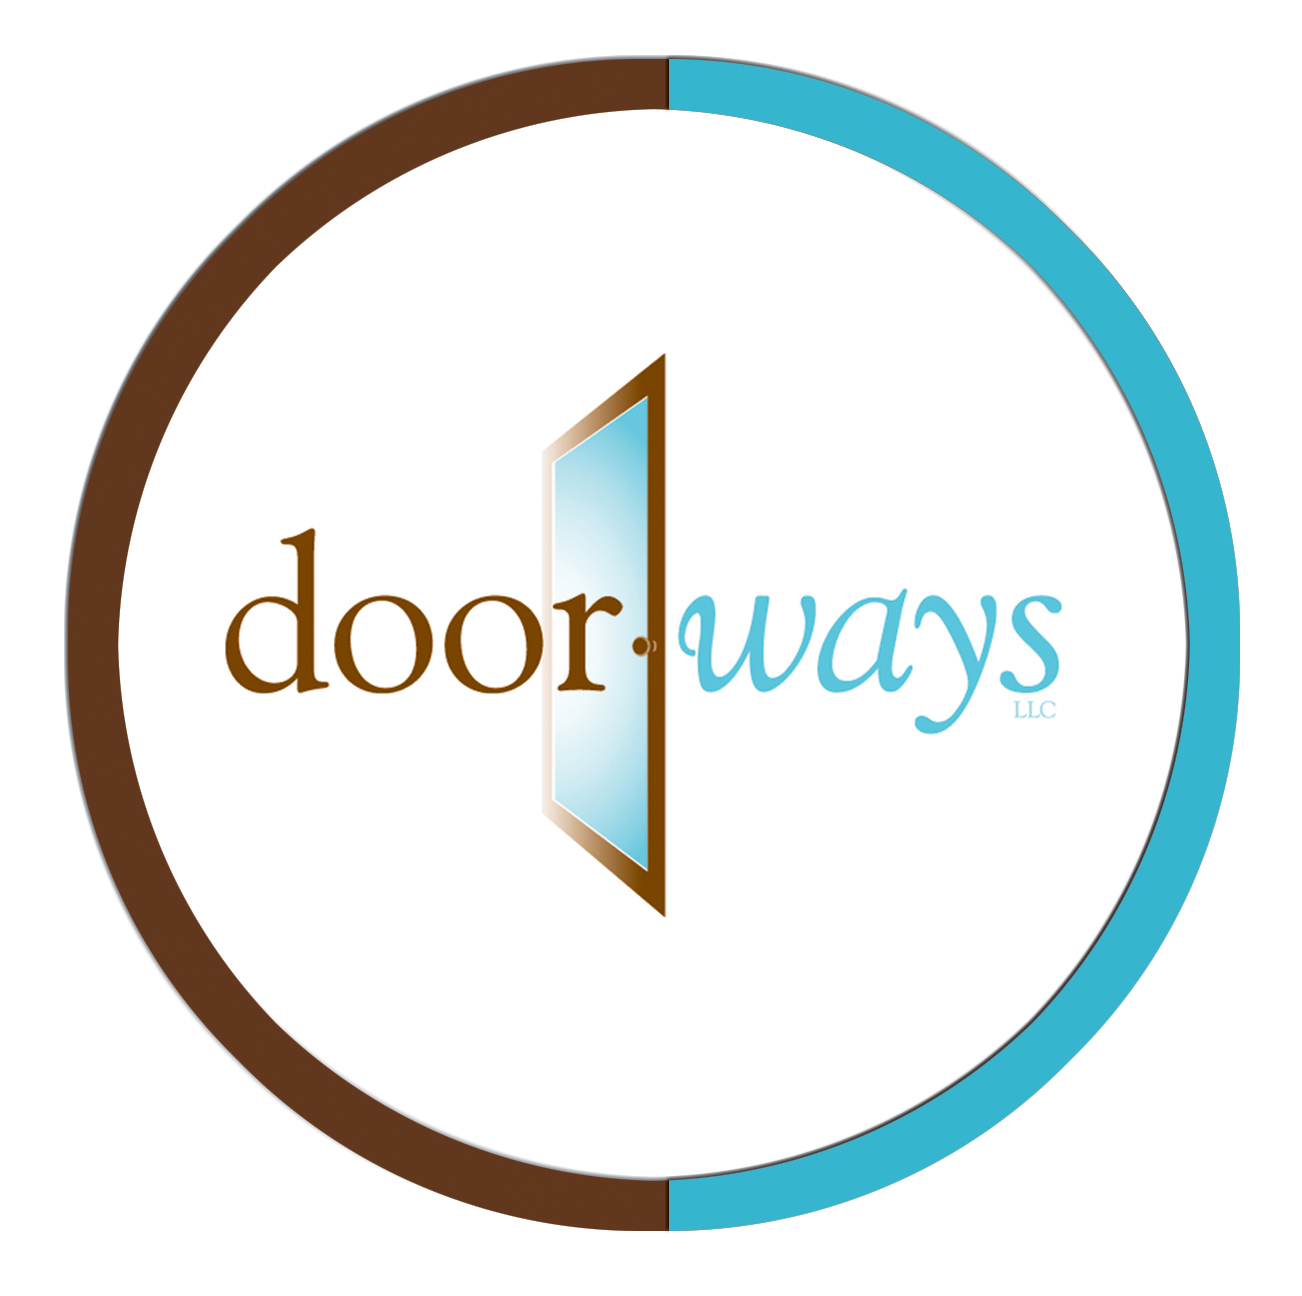 Doorways LLC specializes in teen counseling in Phoenix, AZ.